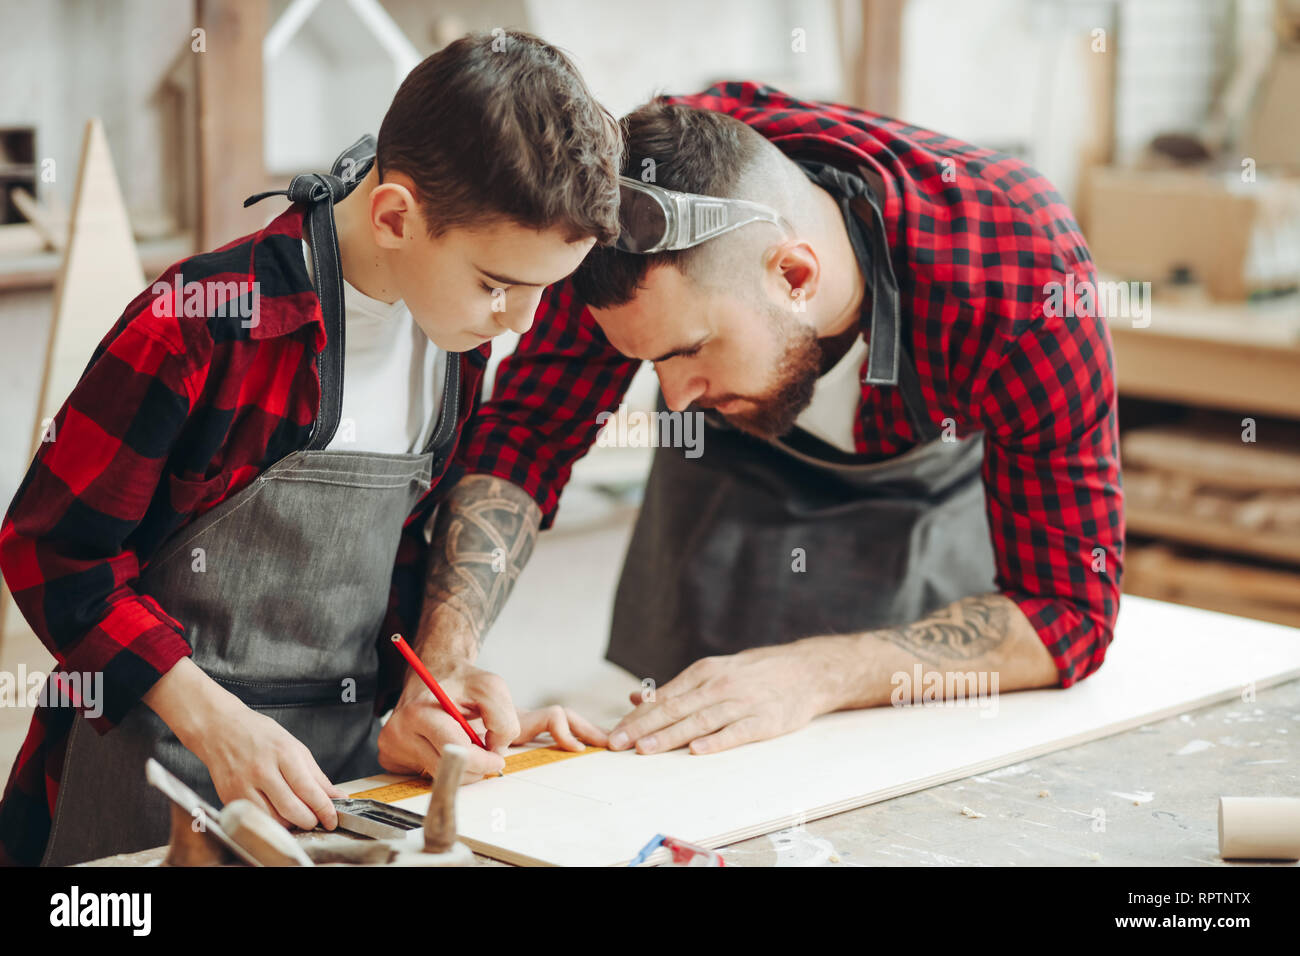 Curious little boy take classes of carpentery from famous woodworker. Hobby is growing into work by vocation. - Stock Image